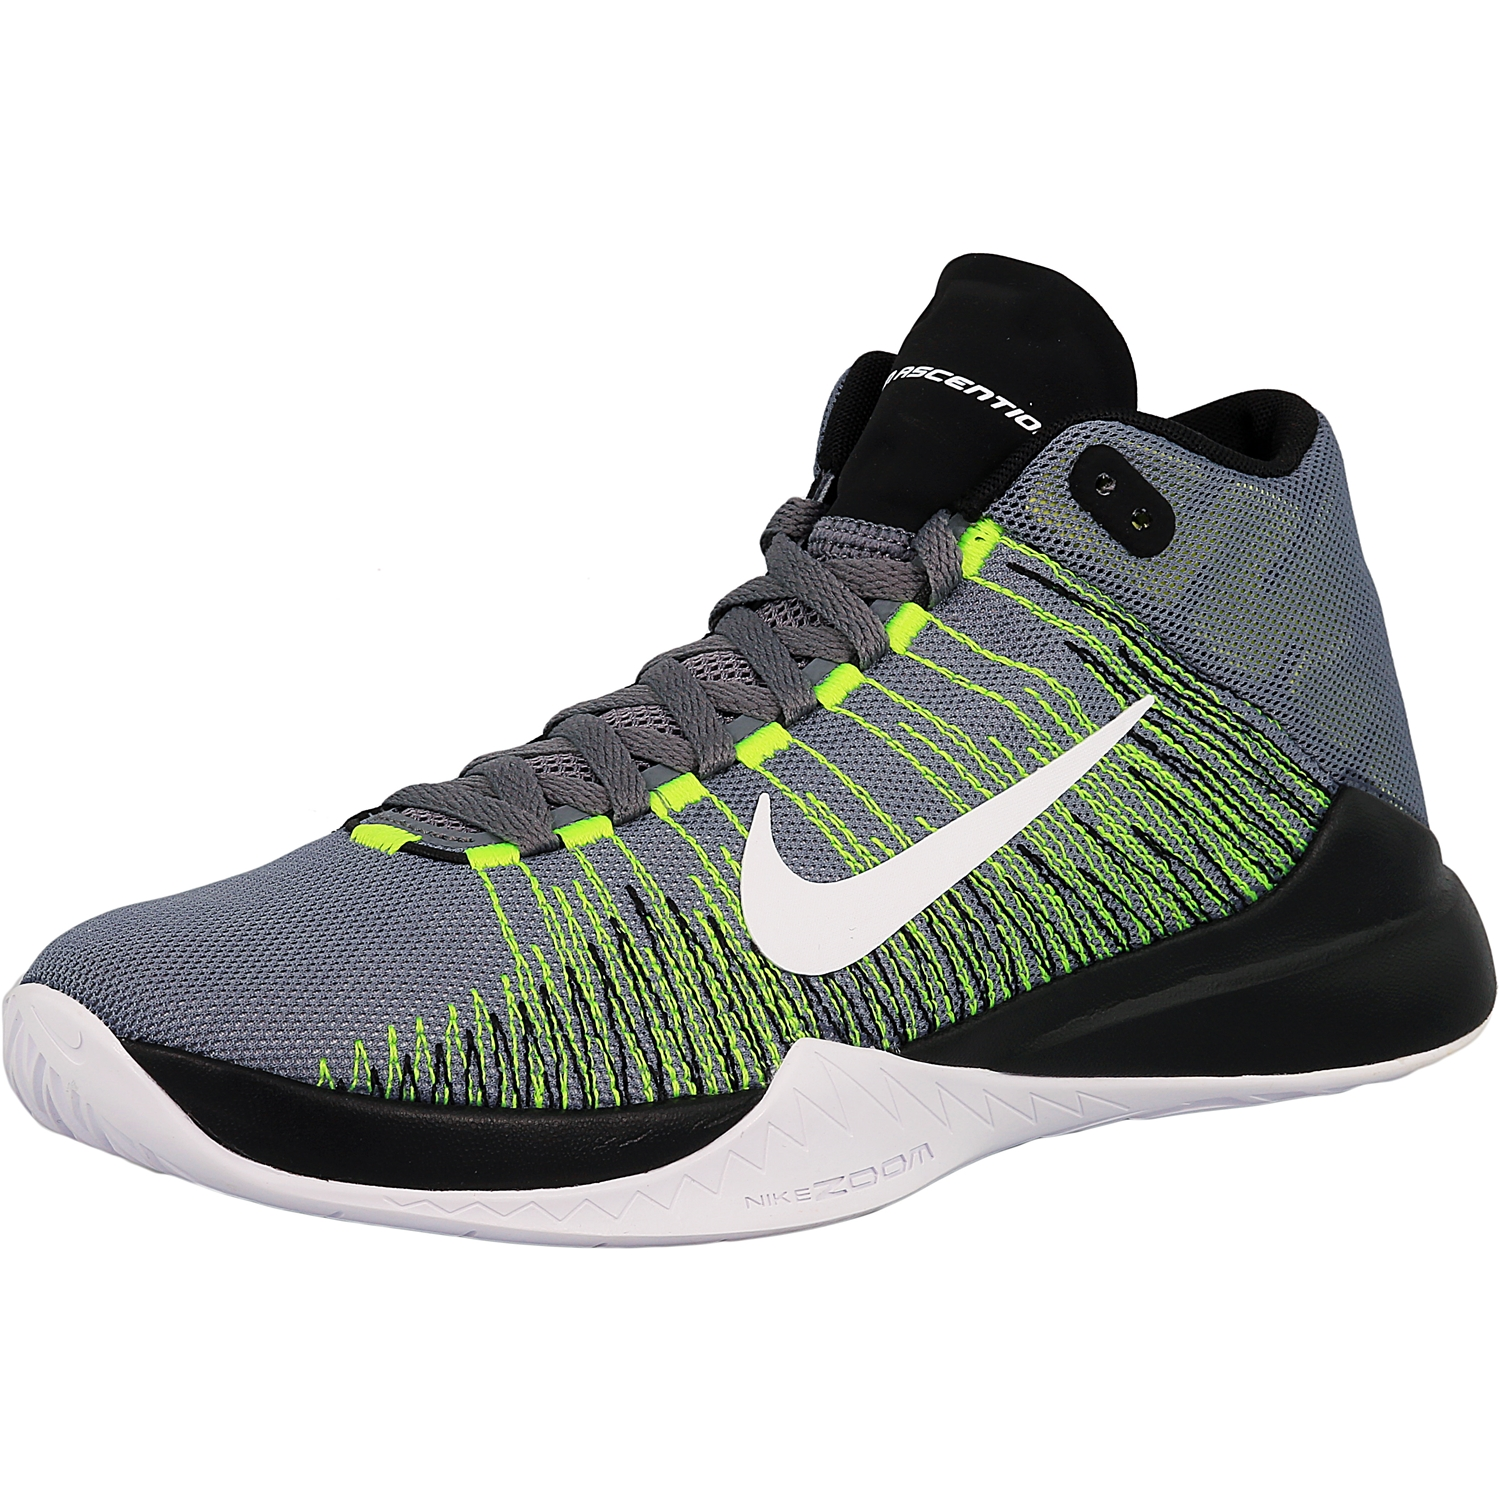 c8cc9dd58852 ... best price nike mens zoom ascention cool grey white volt black ankle  high fabric 9940c ea0bd